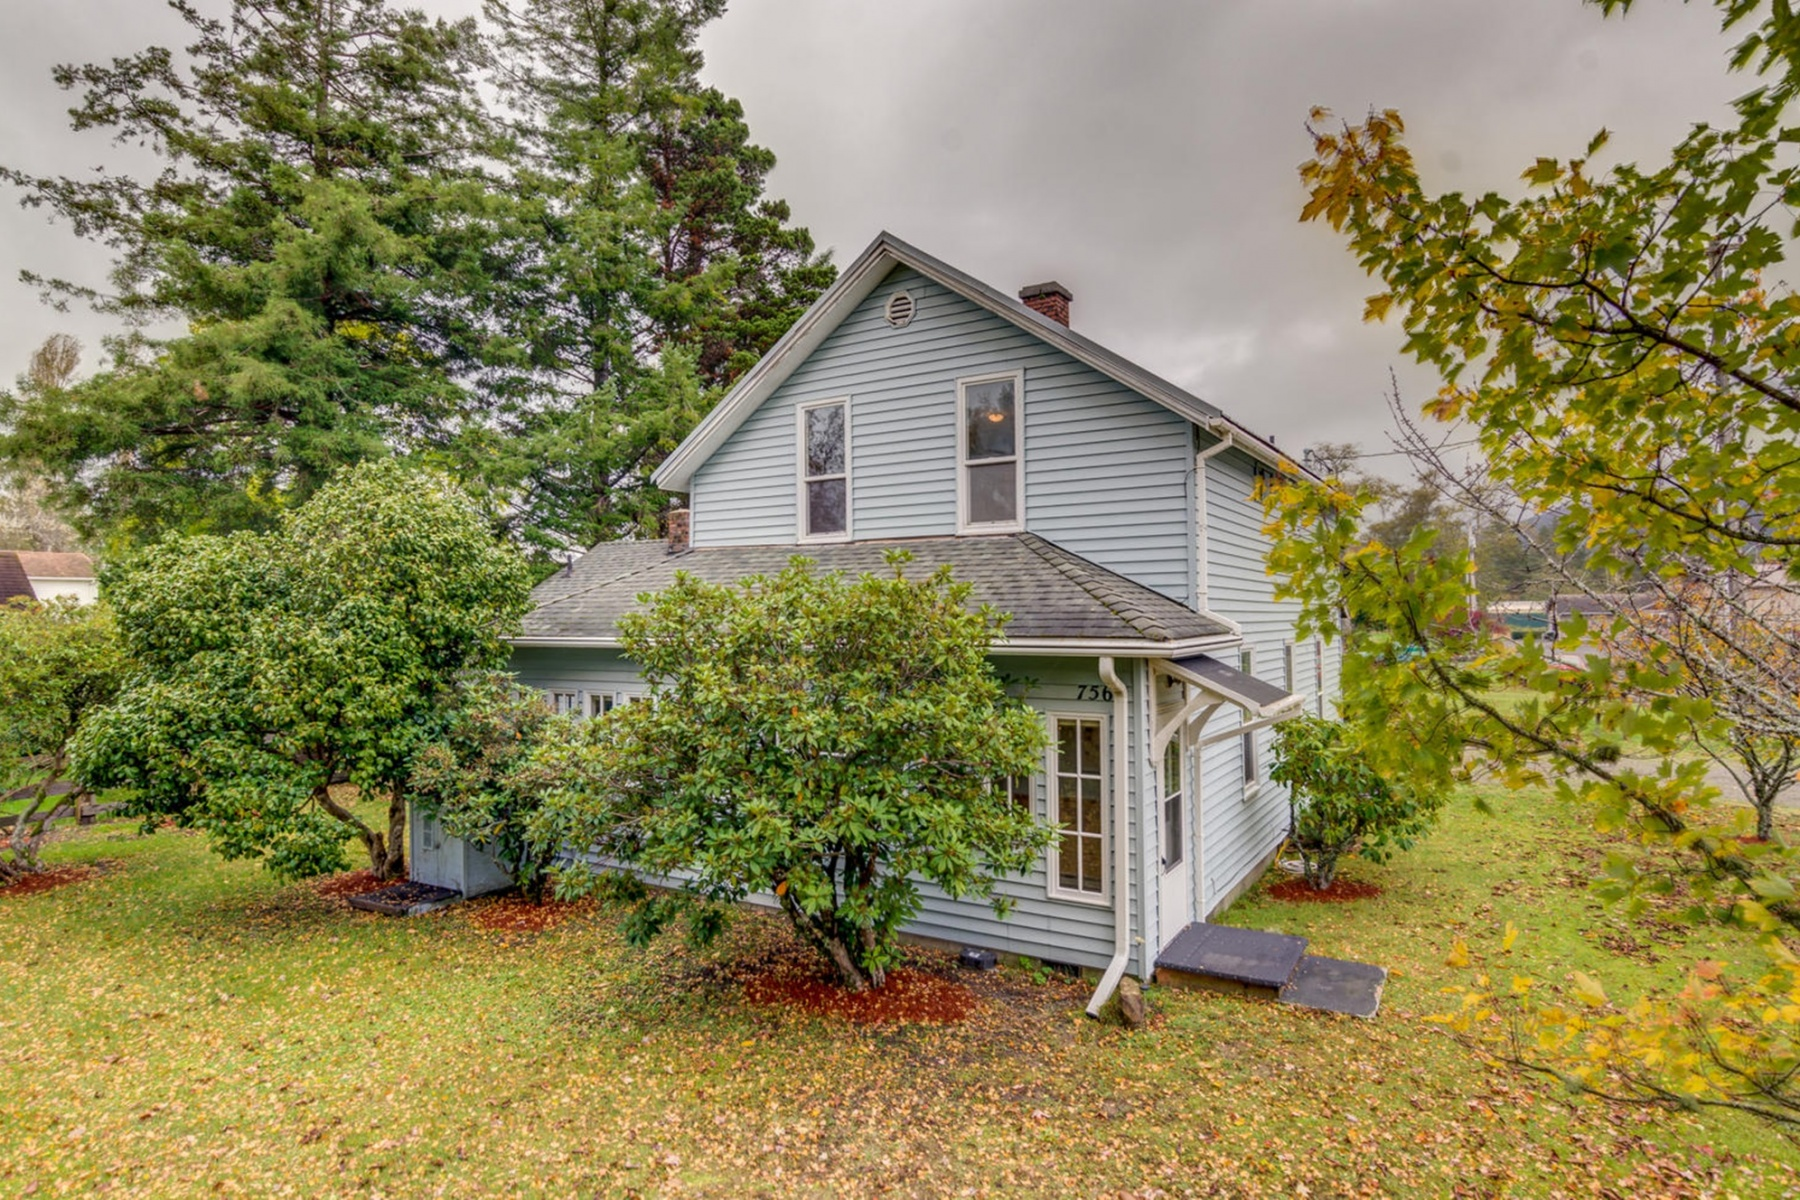 Single Family Homes for Sale at 756 State Route 101 756 State Rt 101 Chinook, Washington 98614 United States